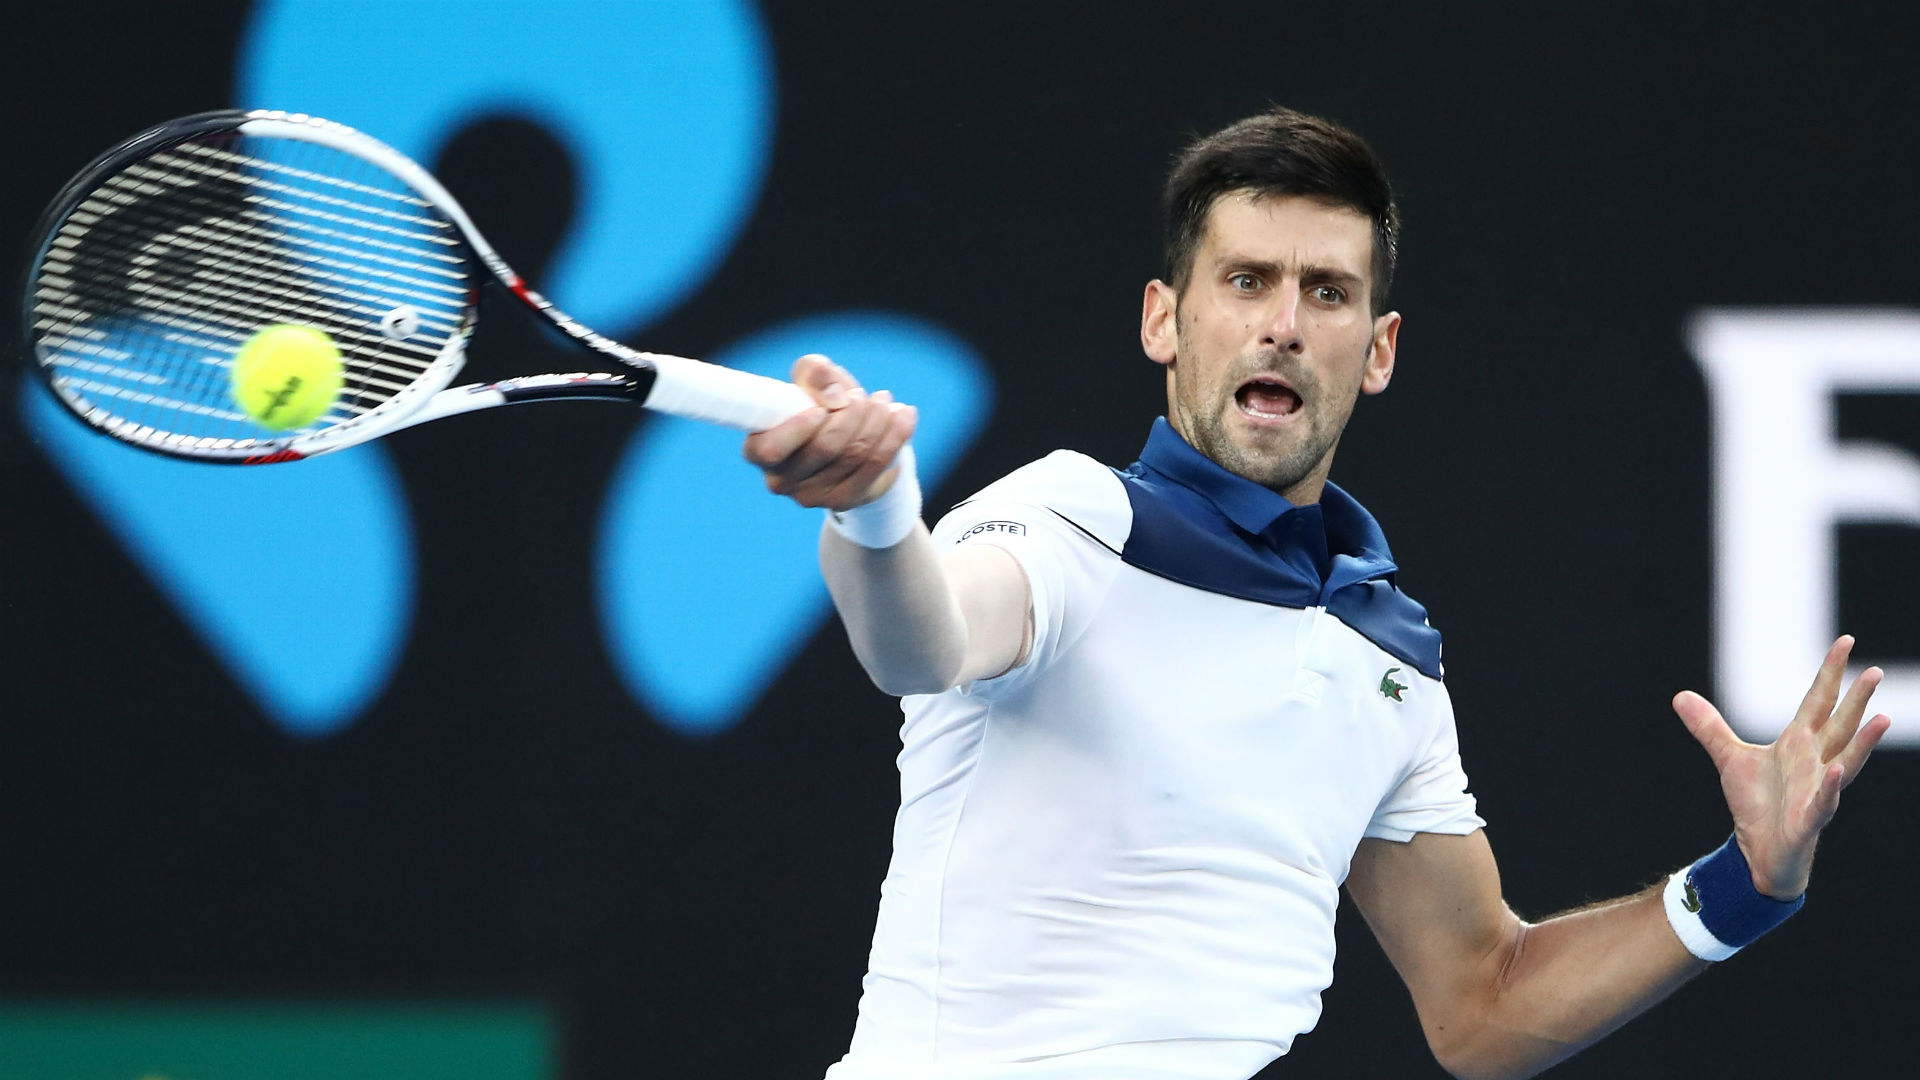 Novak Djokovic has further procedure on elbow injury after Australian loss